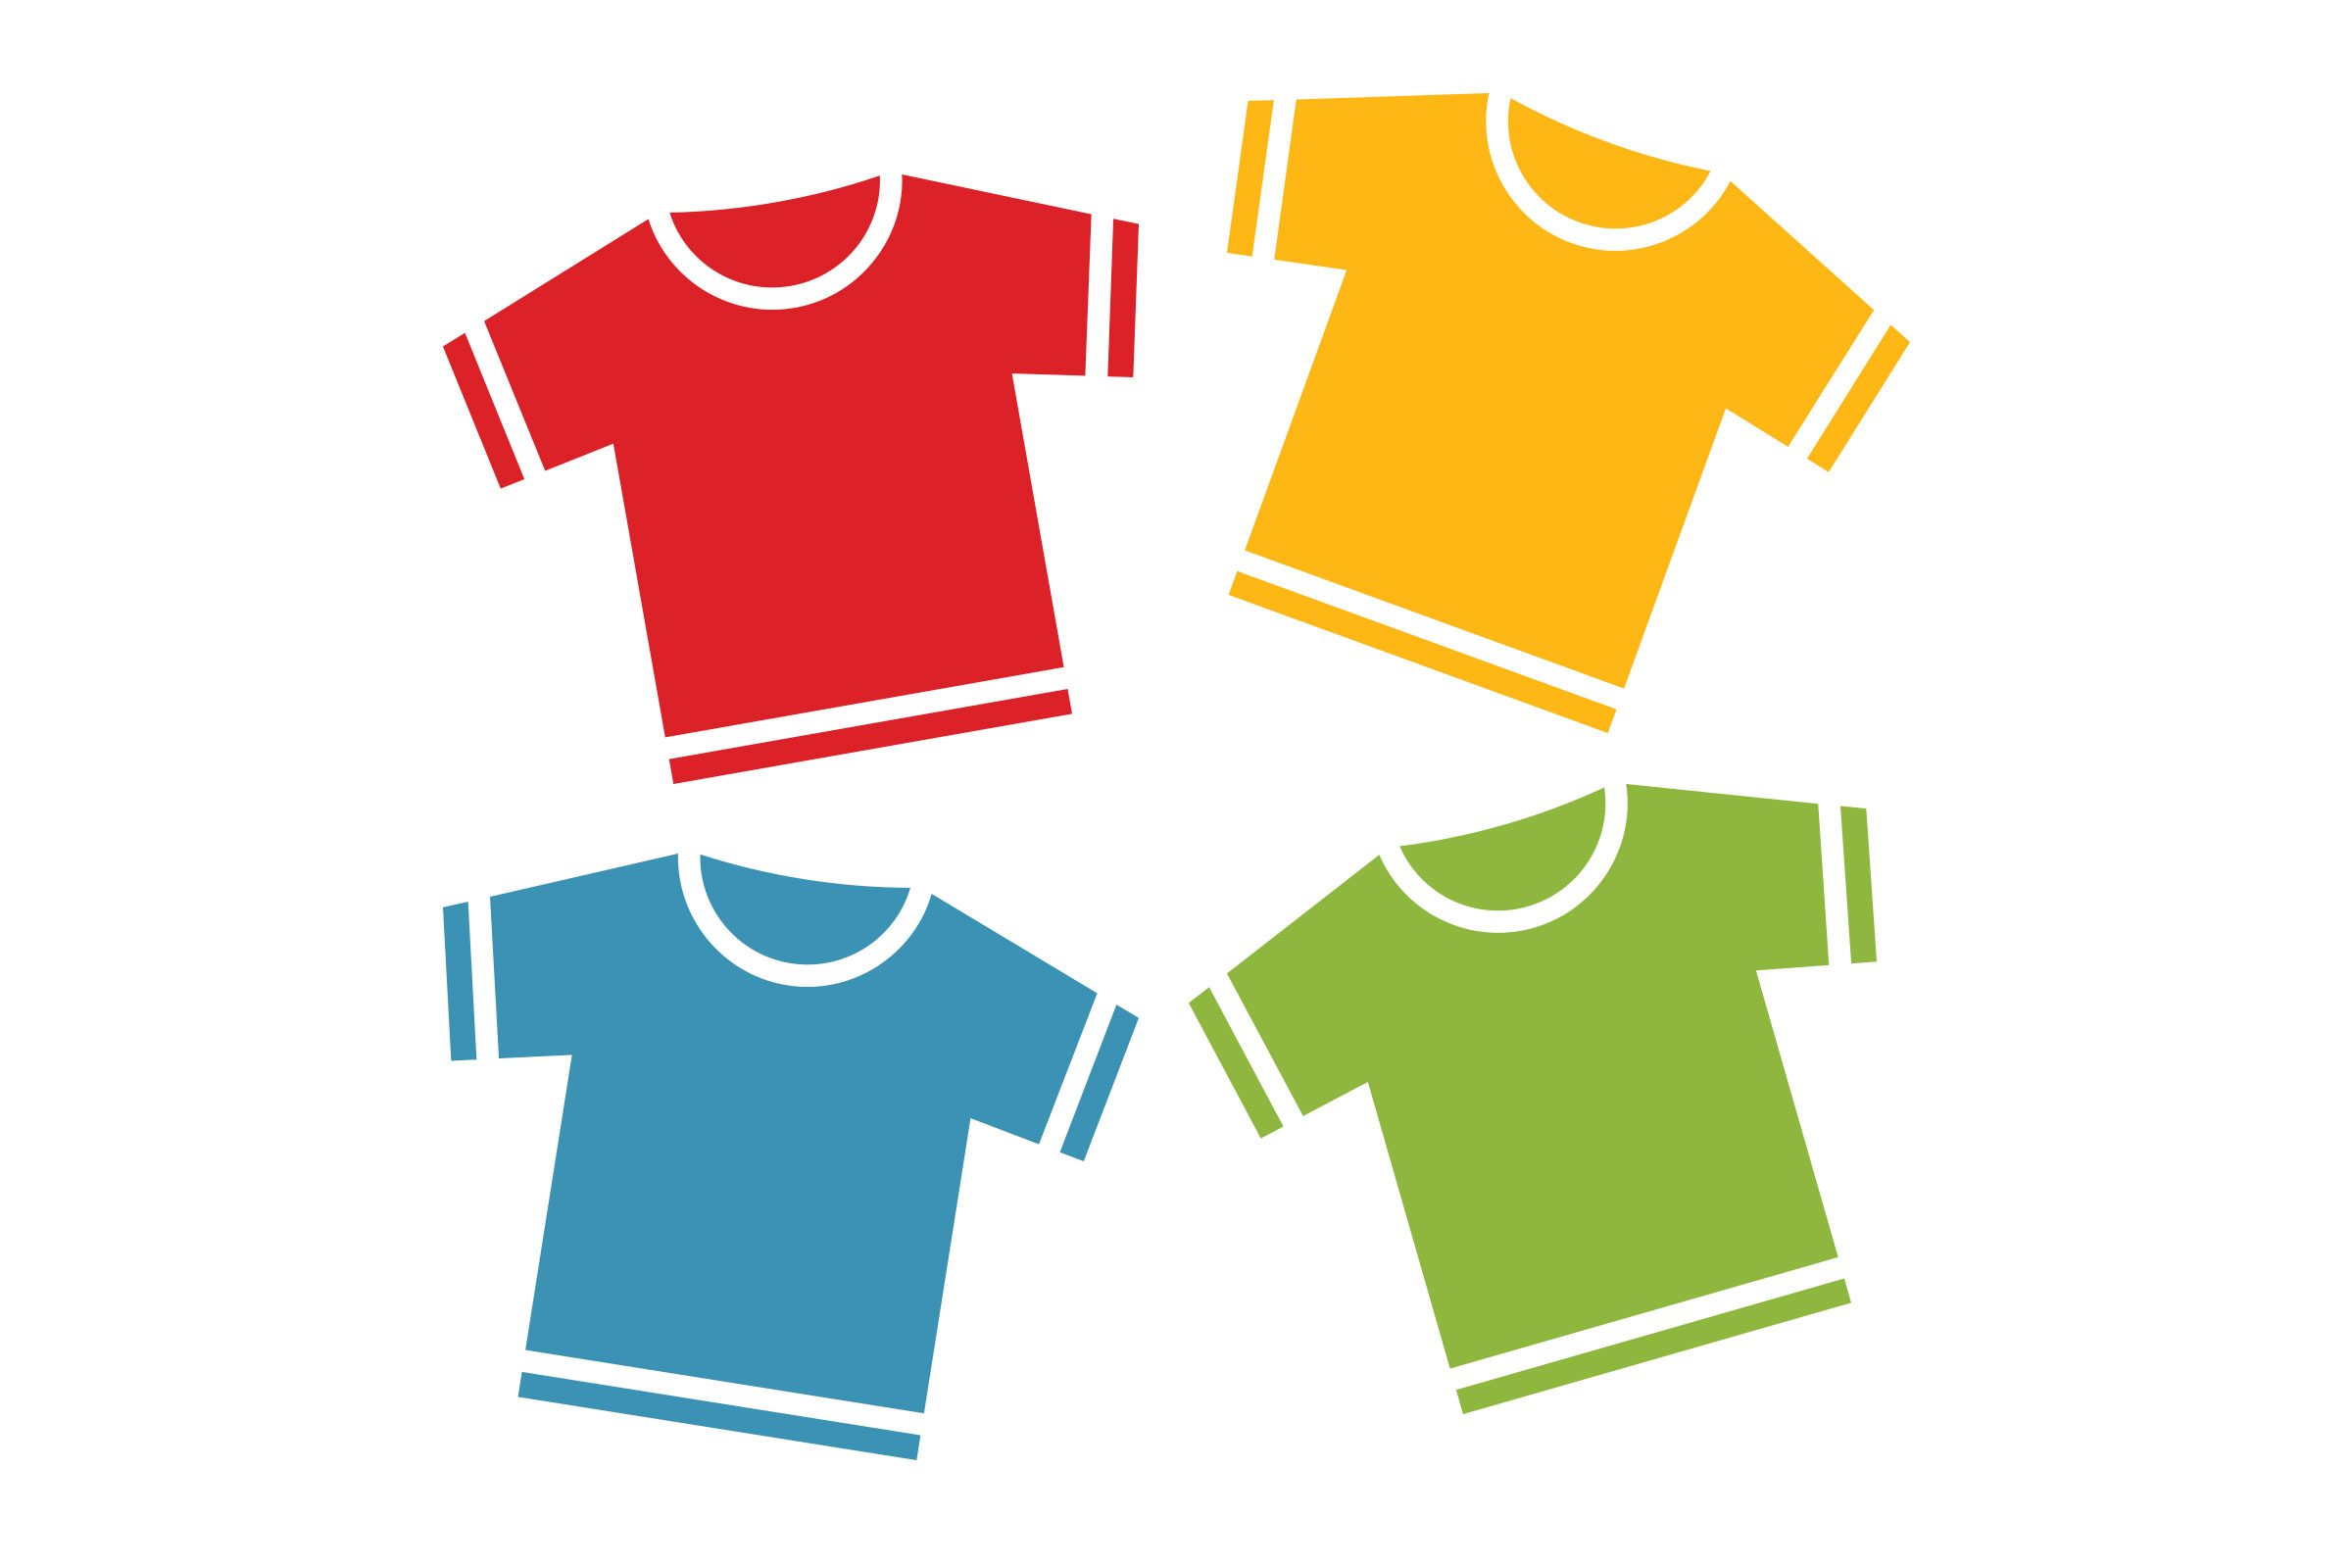 red shirt, yellow shirt, blue shirt, green shirt illustration